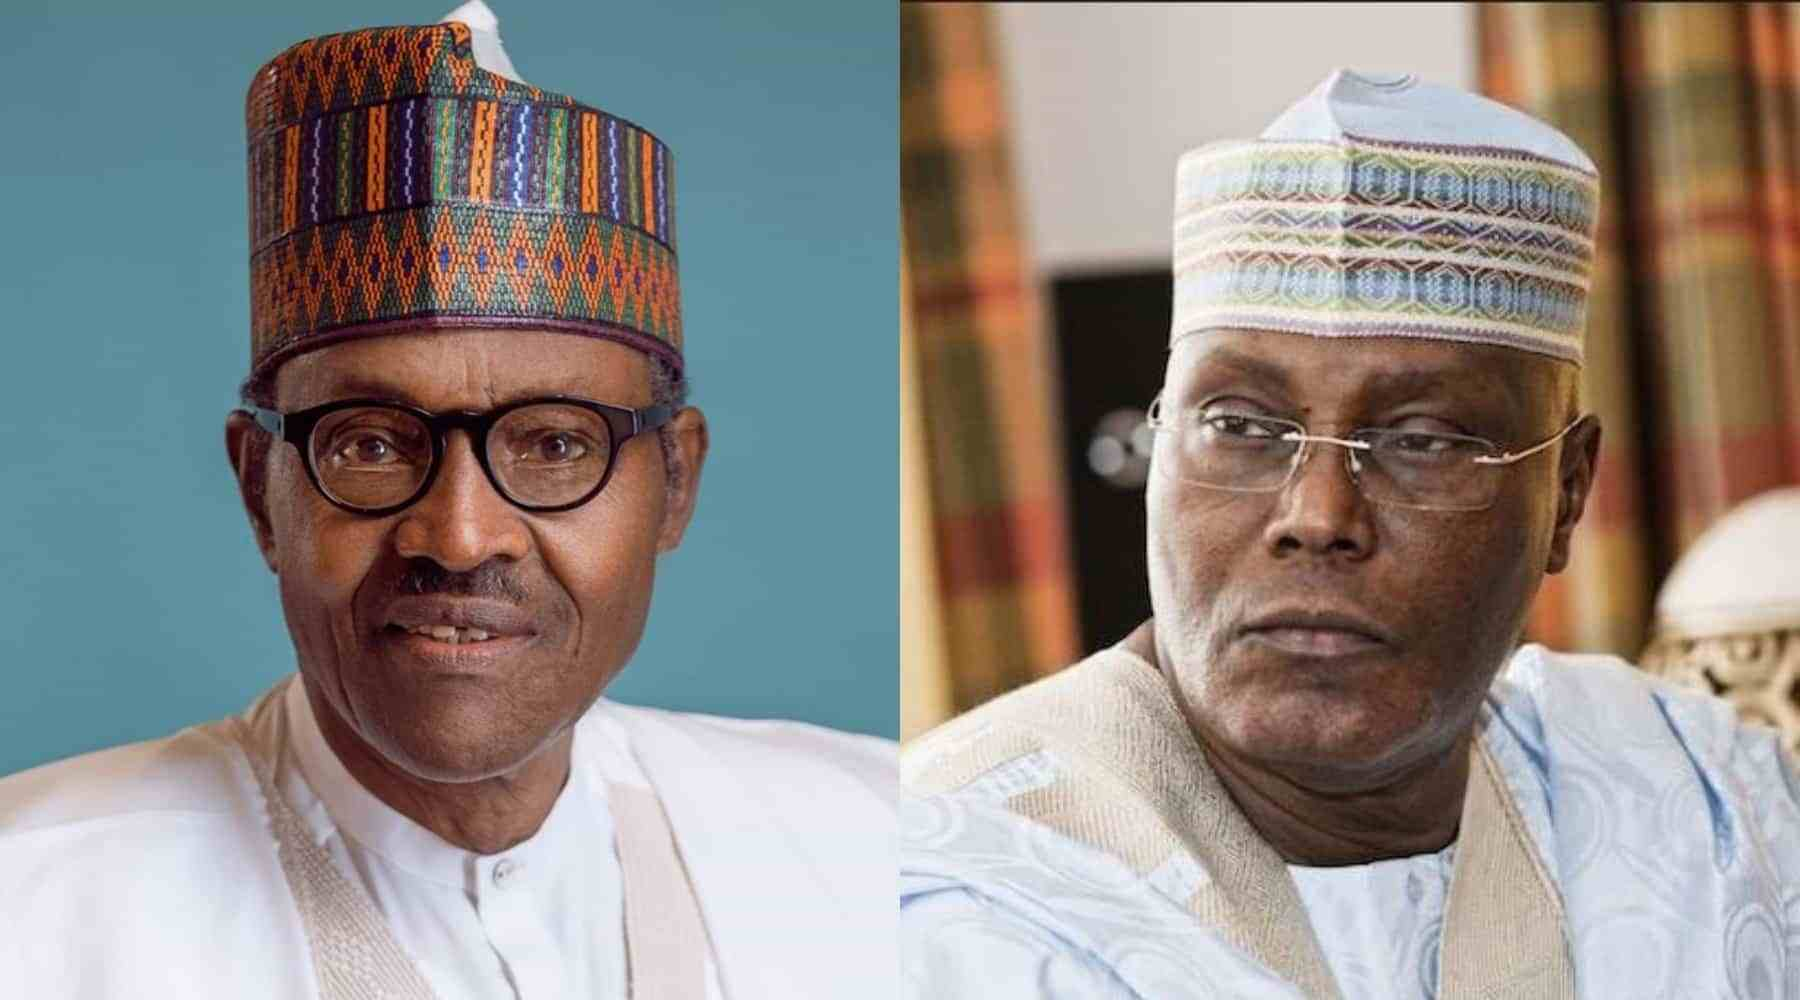 Buhari Atiku 1 - Buhari vs Atiku: INEC transmitted 2019 presidential election results to server - Witnesses tell tribunal